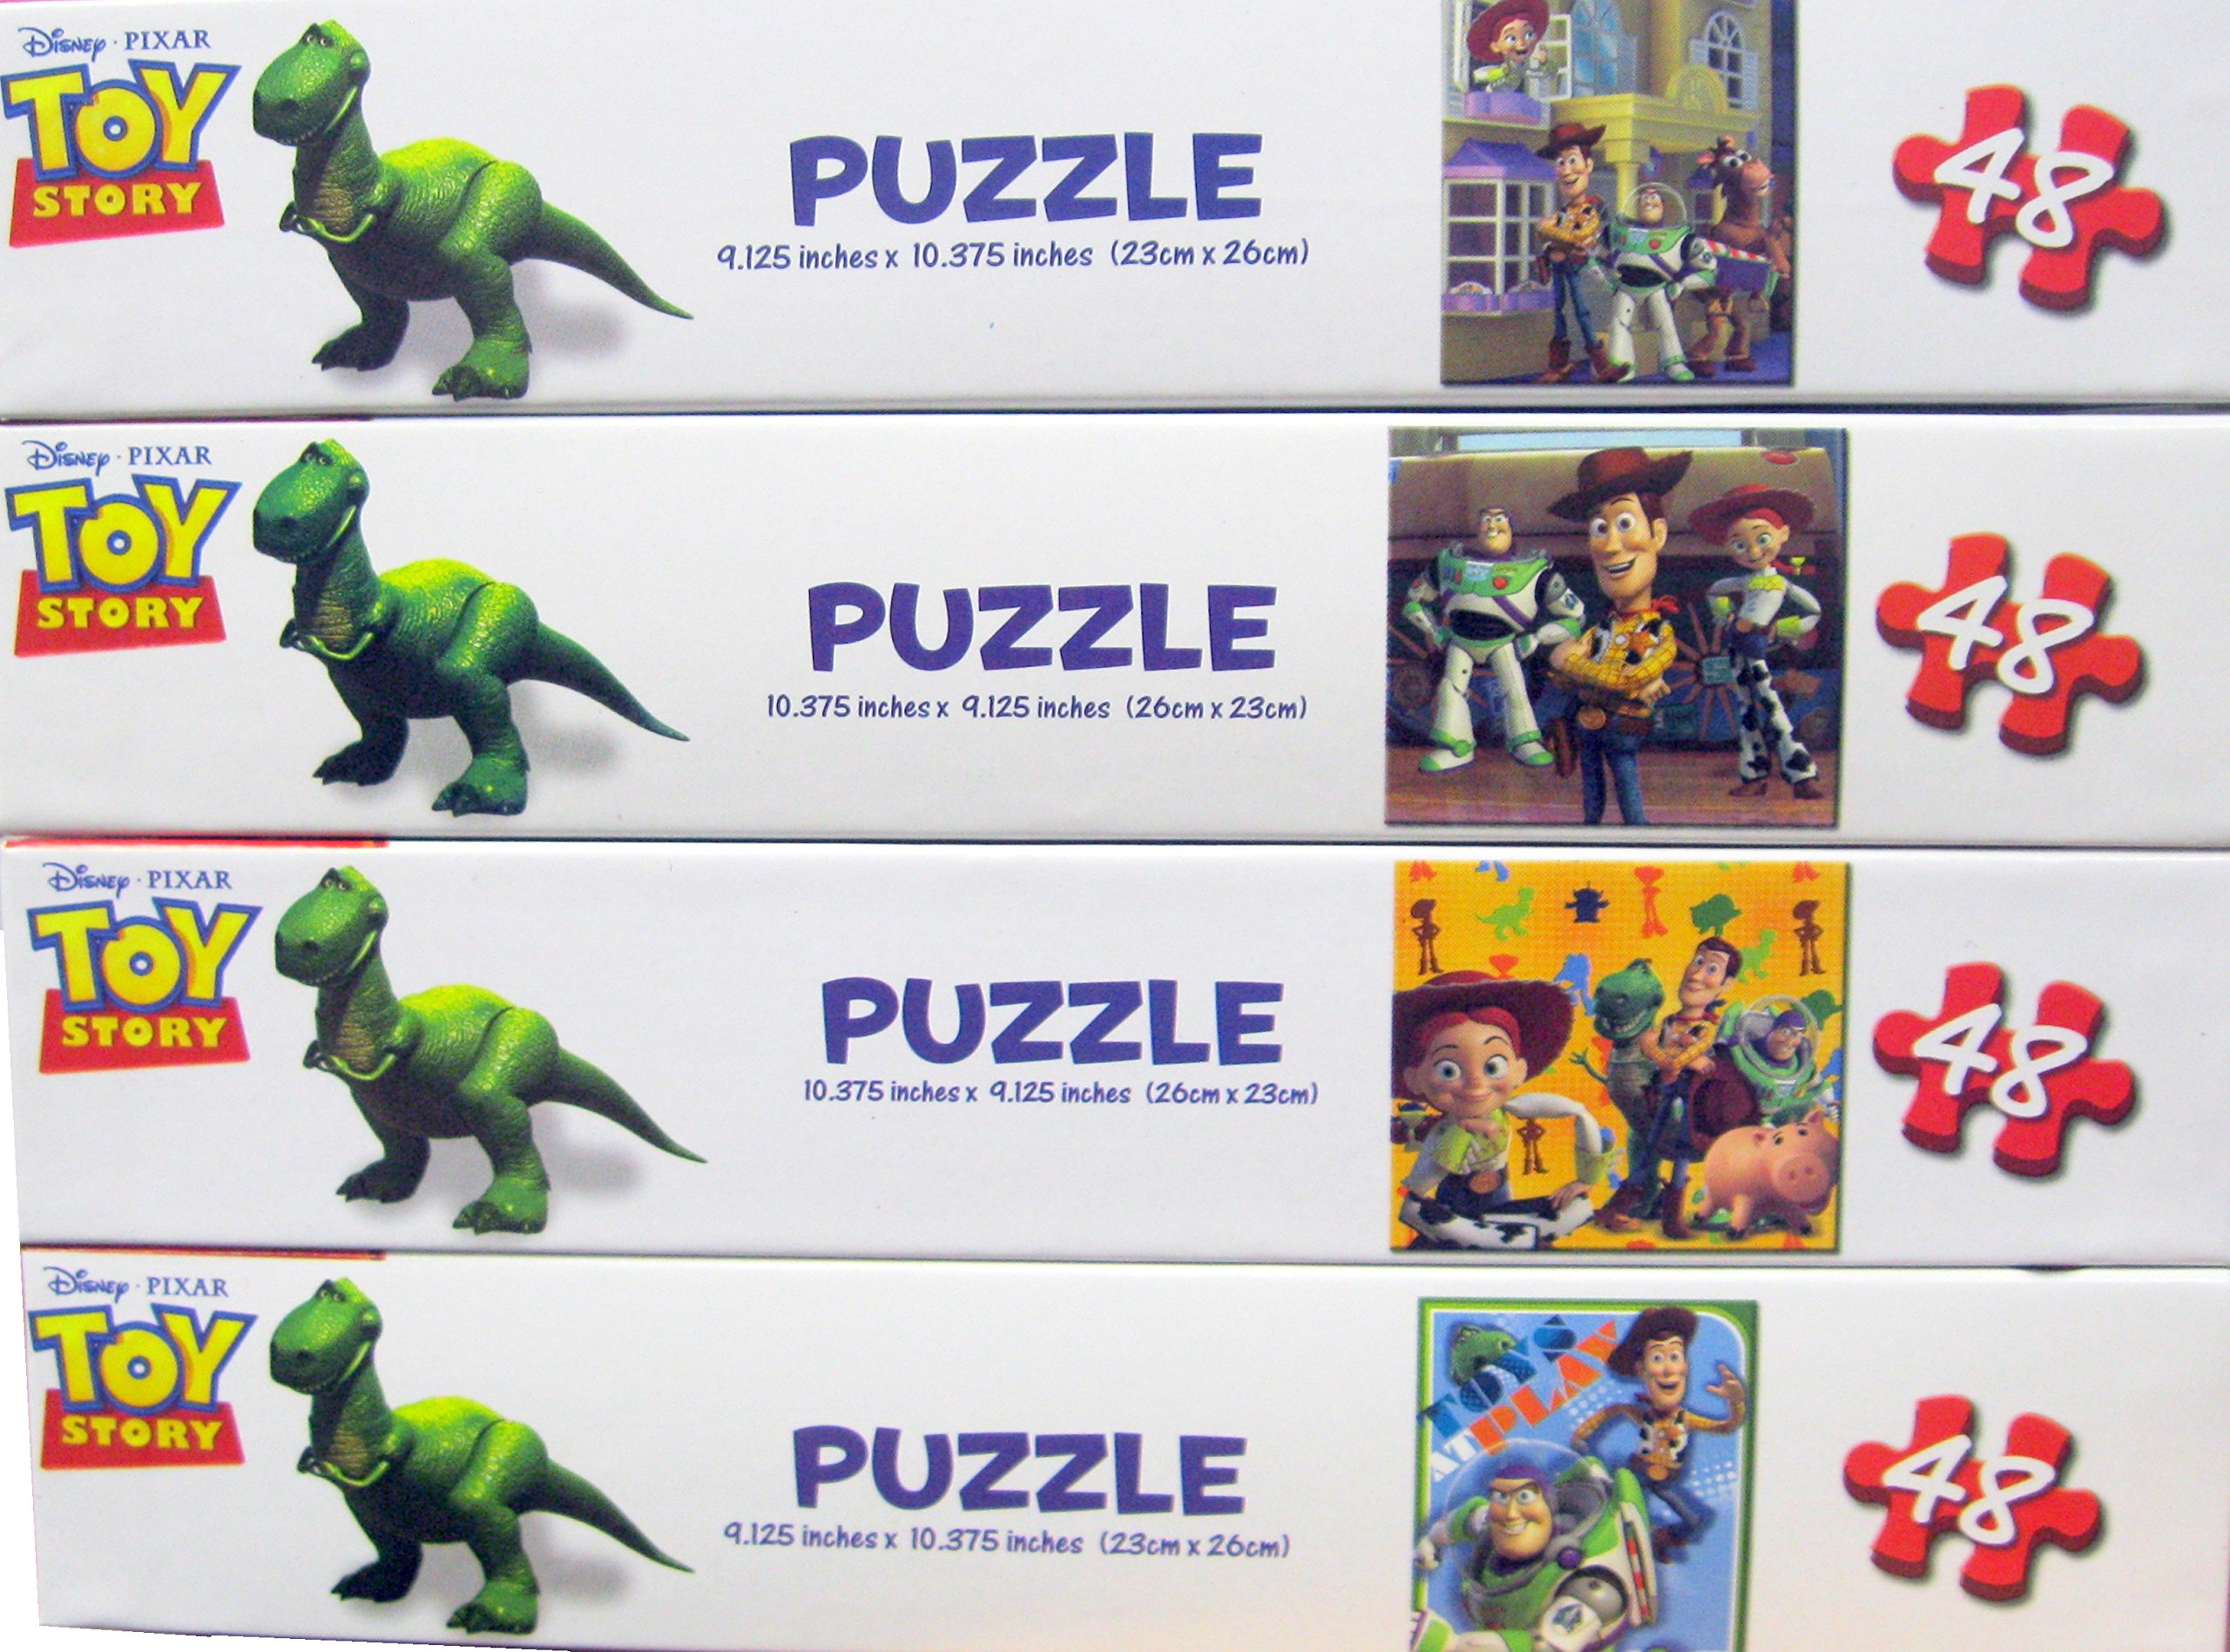 Disney Pixar Toy Story Children's Puzzles - Variety Pack (4 Total)